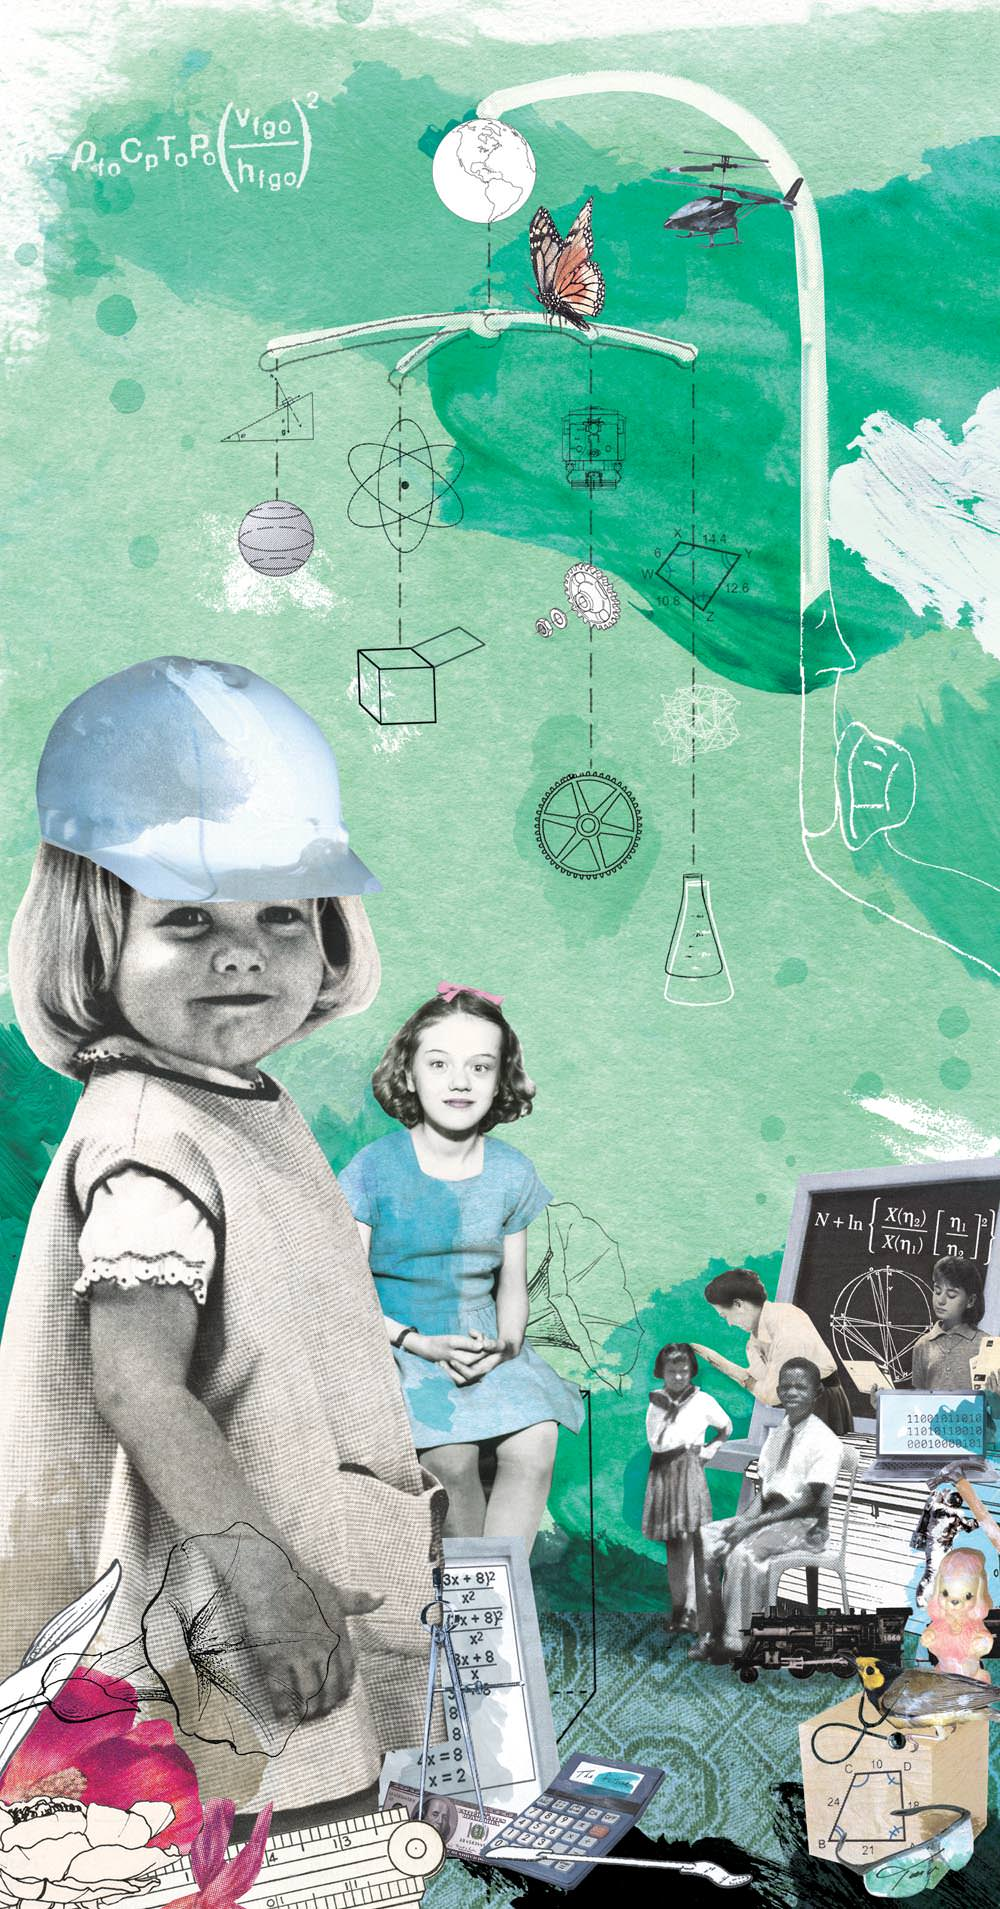 """Getting to Them Early"" for Purdue University's alumni magazine ""Open Minded"" for an article about engaging girls in STEM subjects."